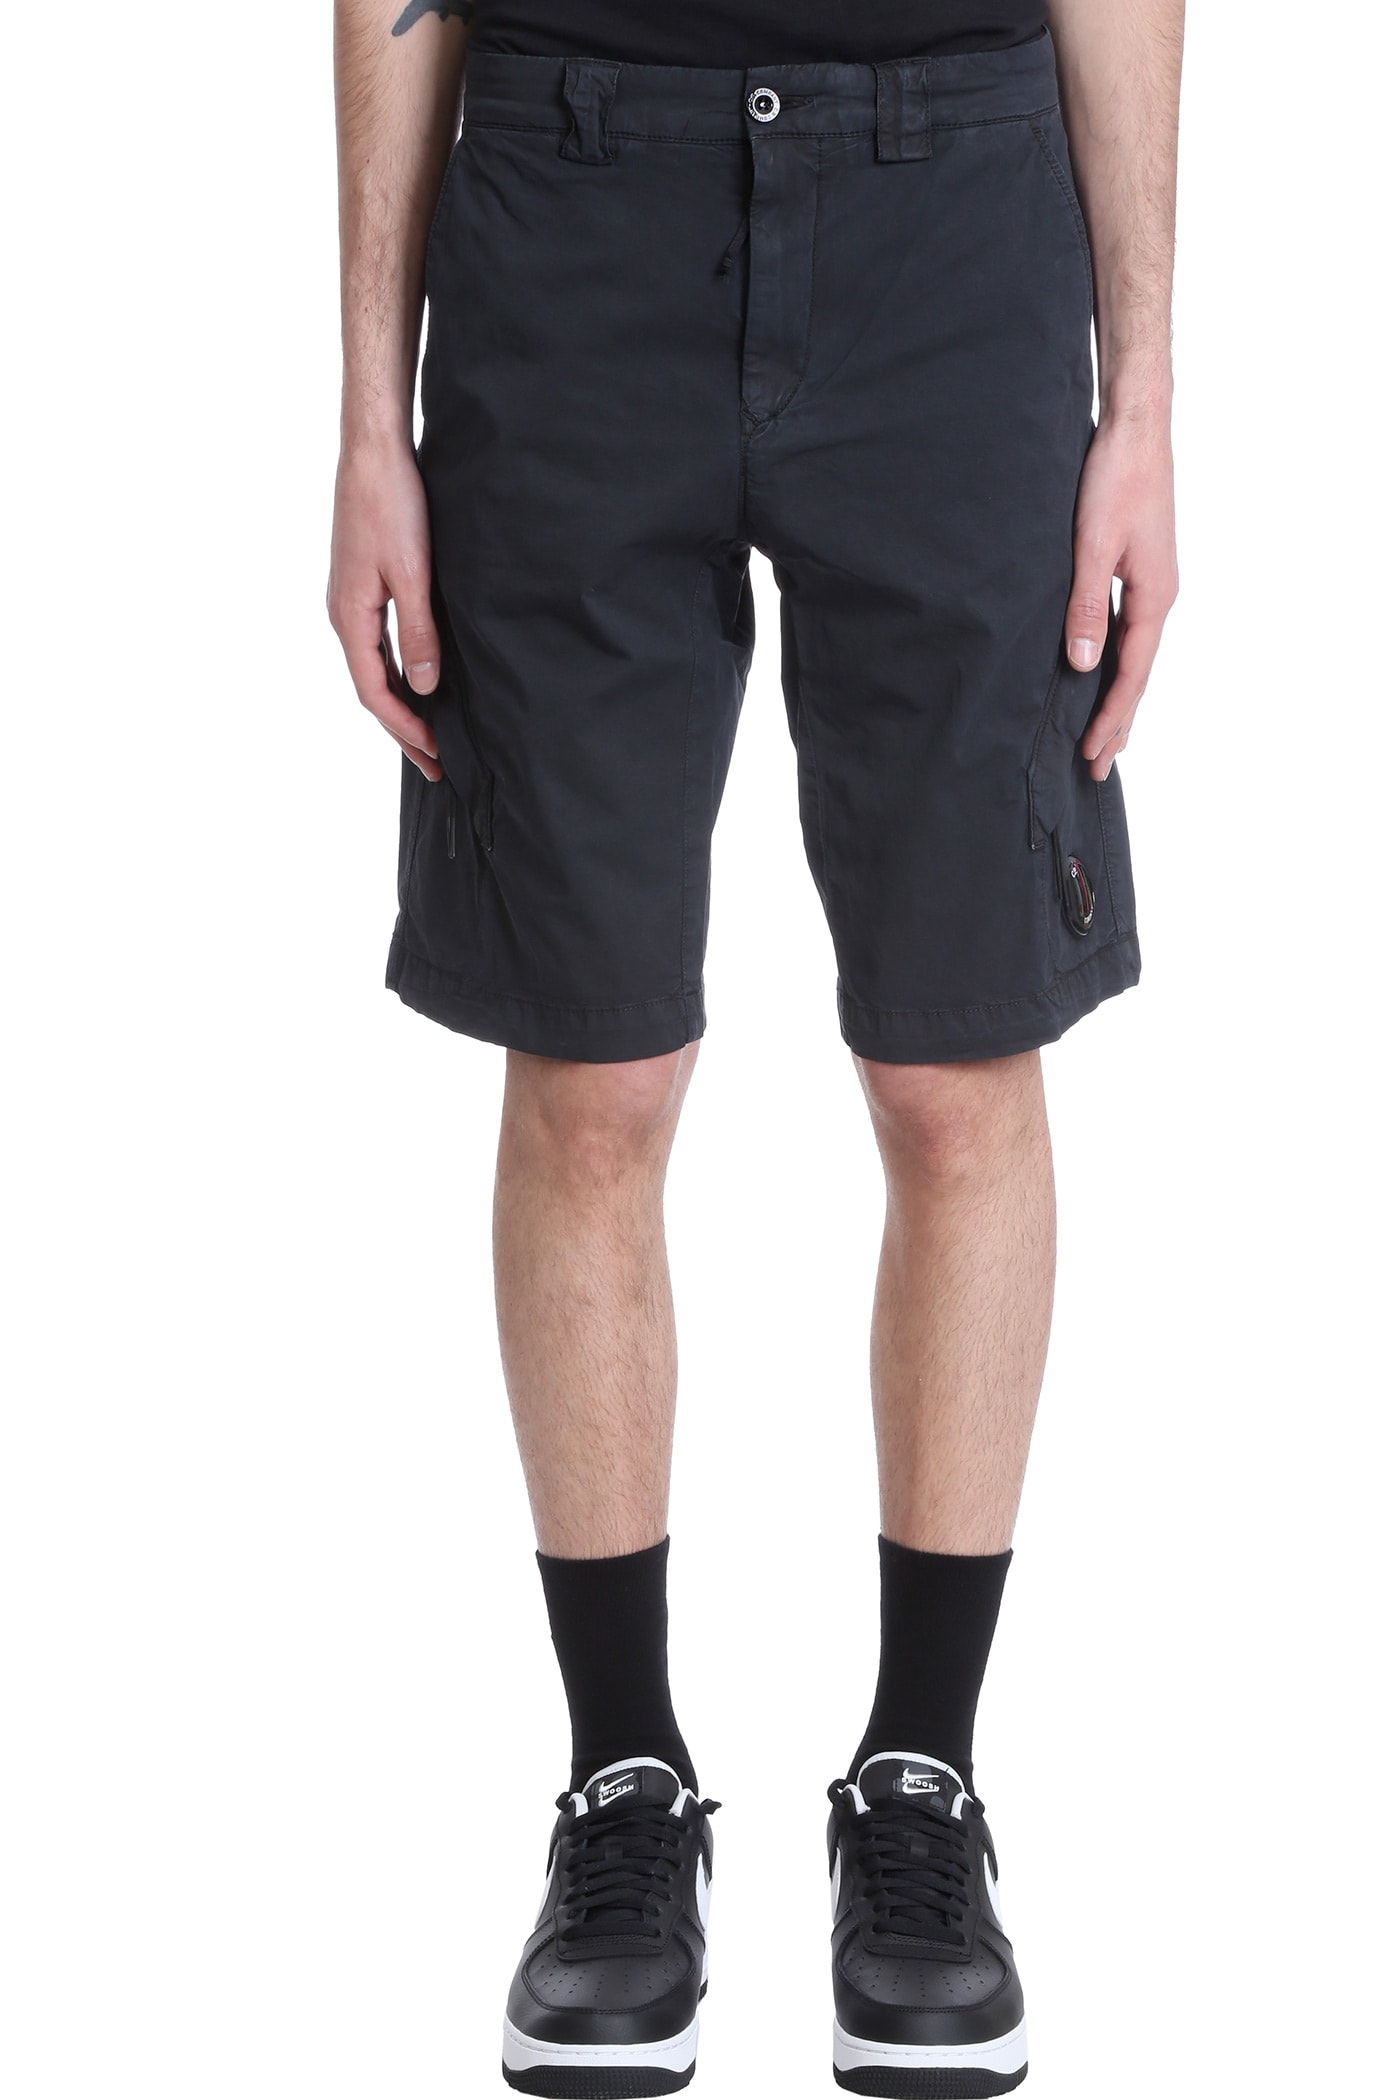 C.p. Company Cottons SHORTS IN BLACK COTTON